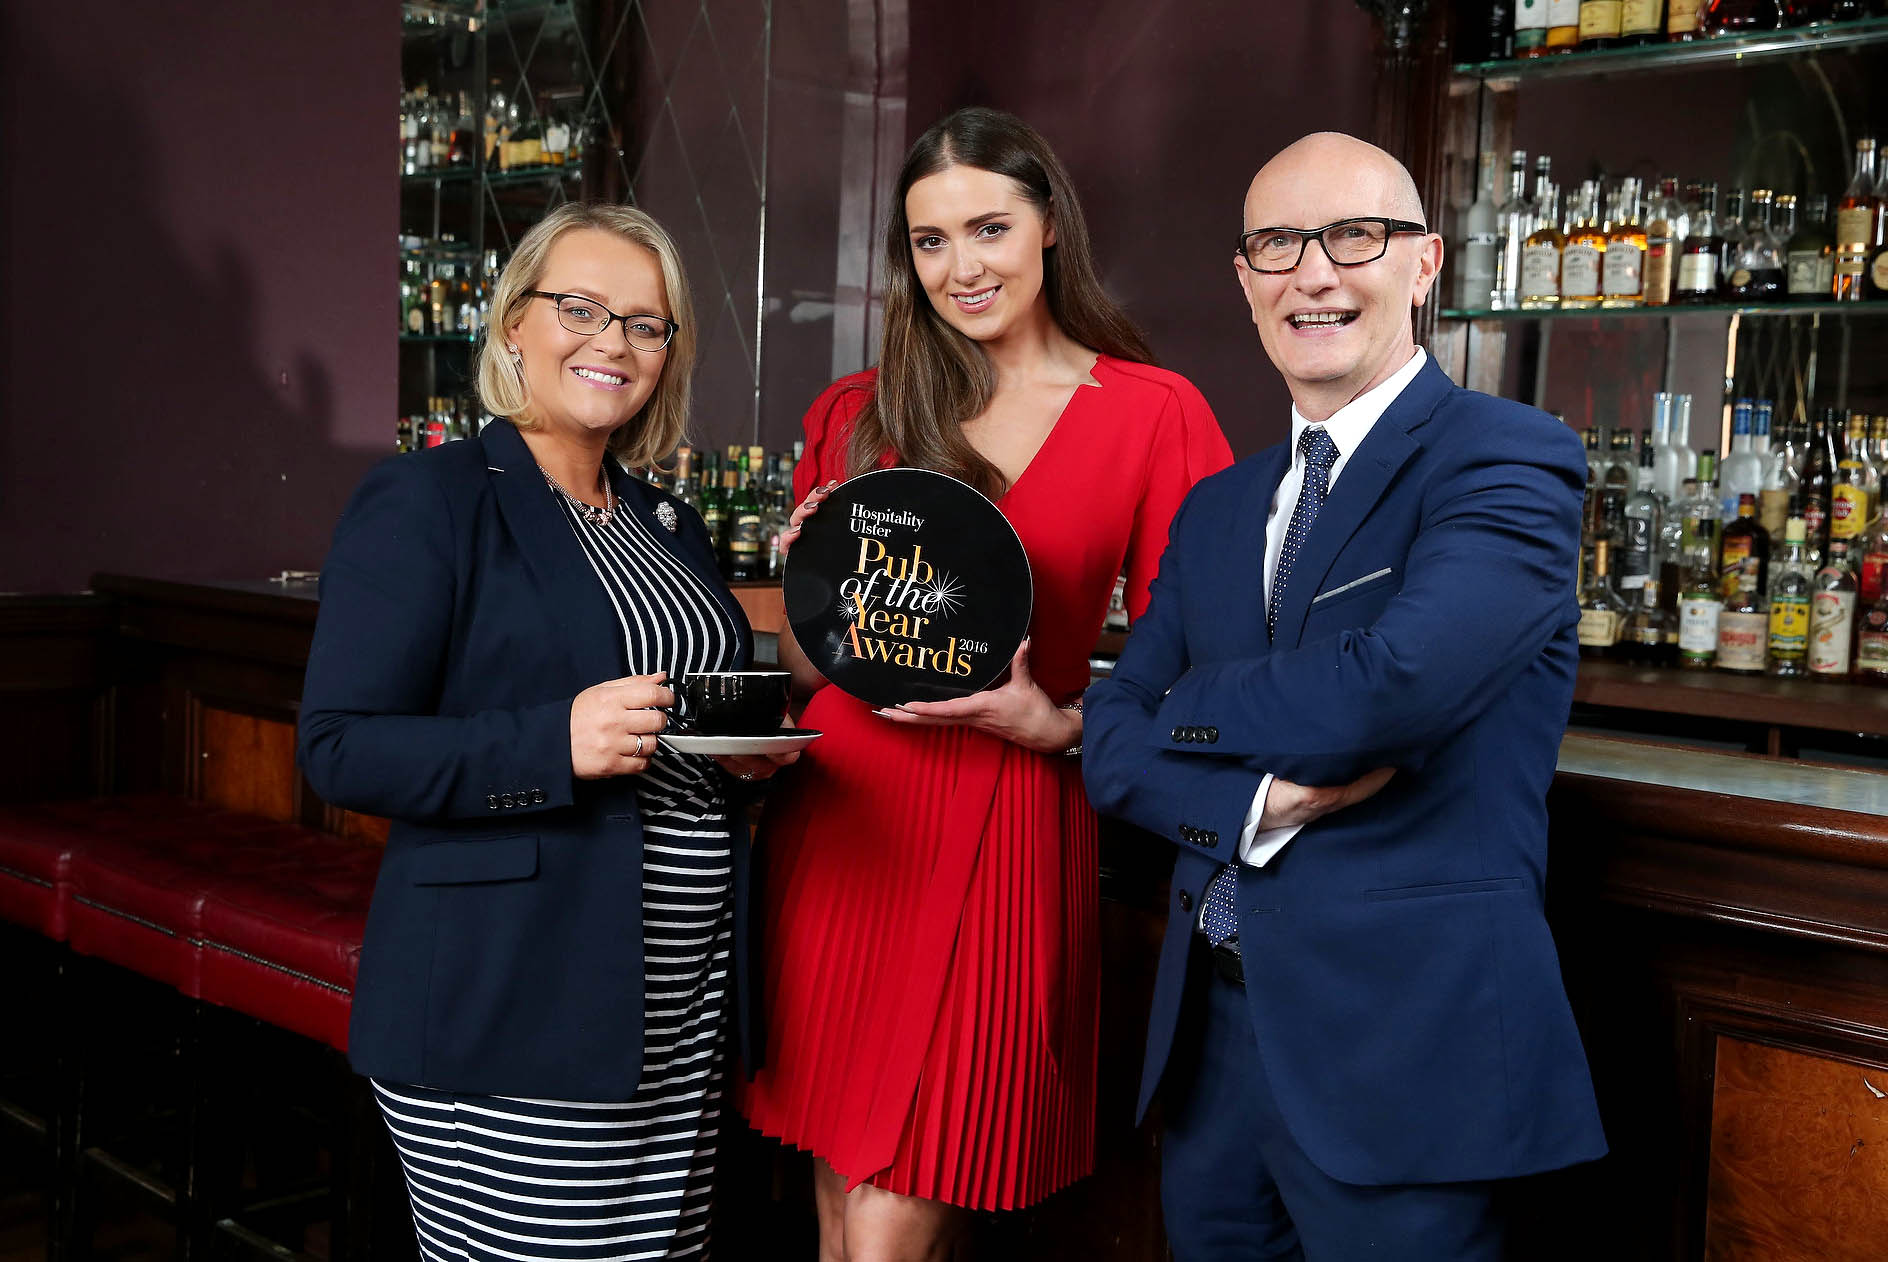 SEARCH BEGINS FOR NORTHERN IRELANDS HOSPITALITY STARS